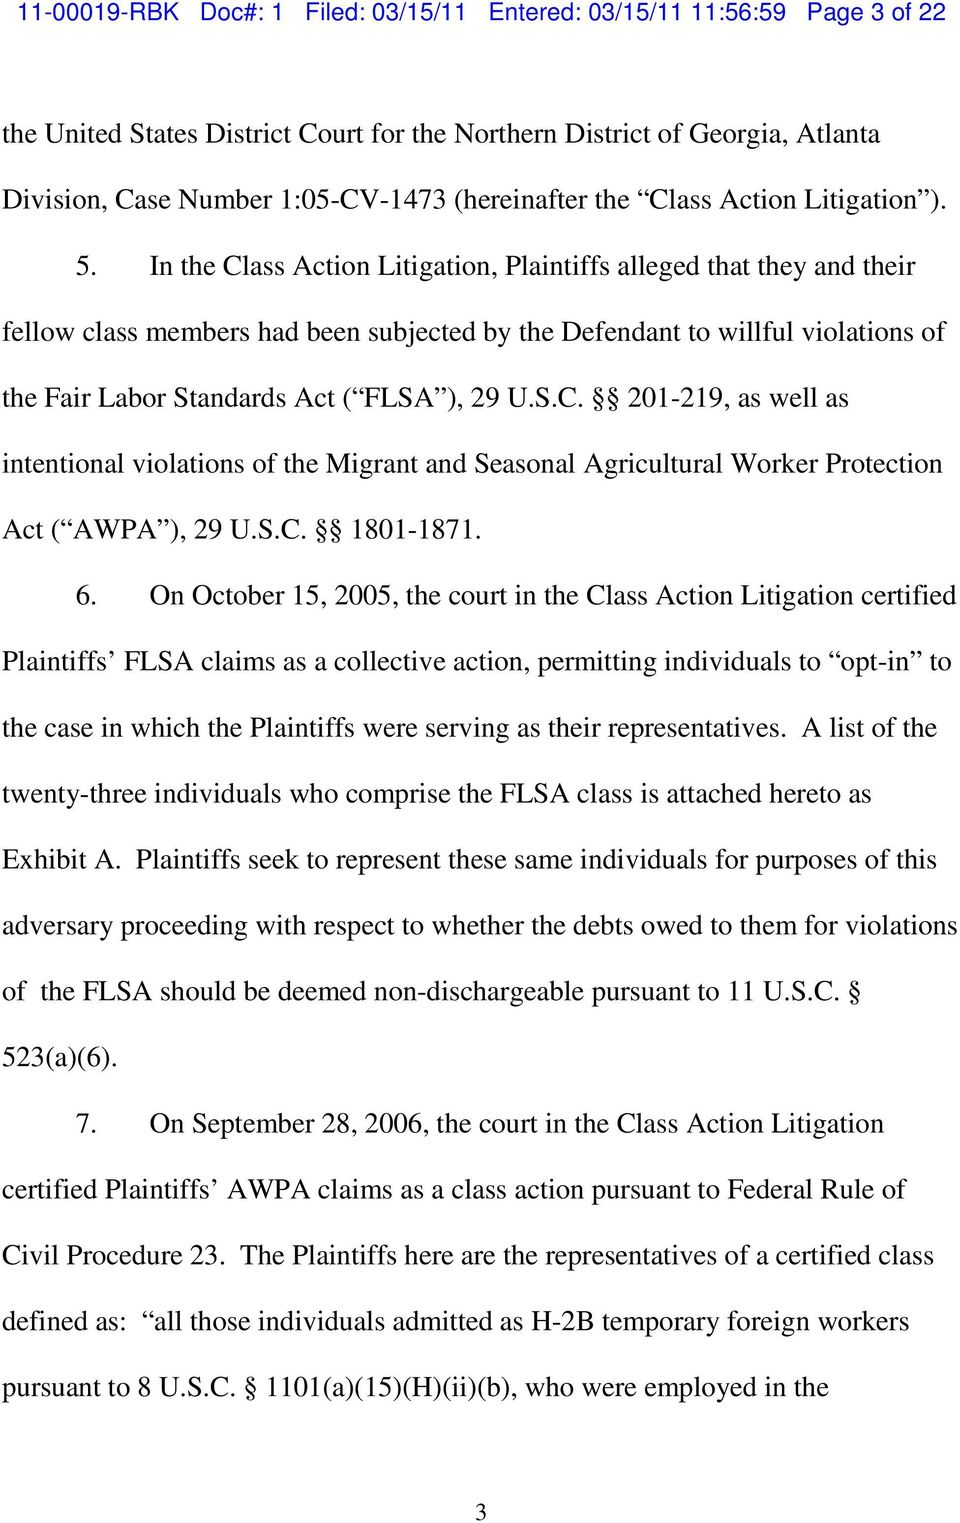 In the Class Action Litigation, Plaintiffs alleged that they and their fellow class members had been subjected by the Defendant to willful violations of the Fair Labor Standards Act ( FLSA ), 29 U.S.C. 201-219, as well as intentional violations of the Migrant and Seasonal Agricultural Worker Protection Act ( AWPA ), 29 U.